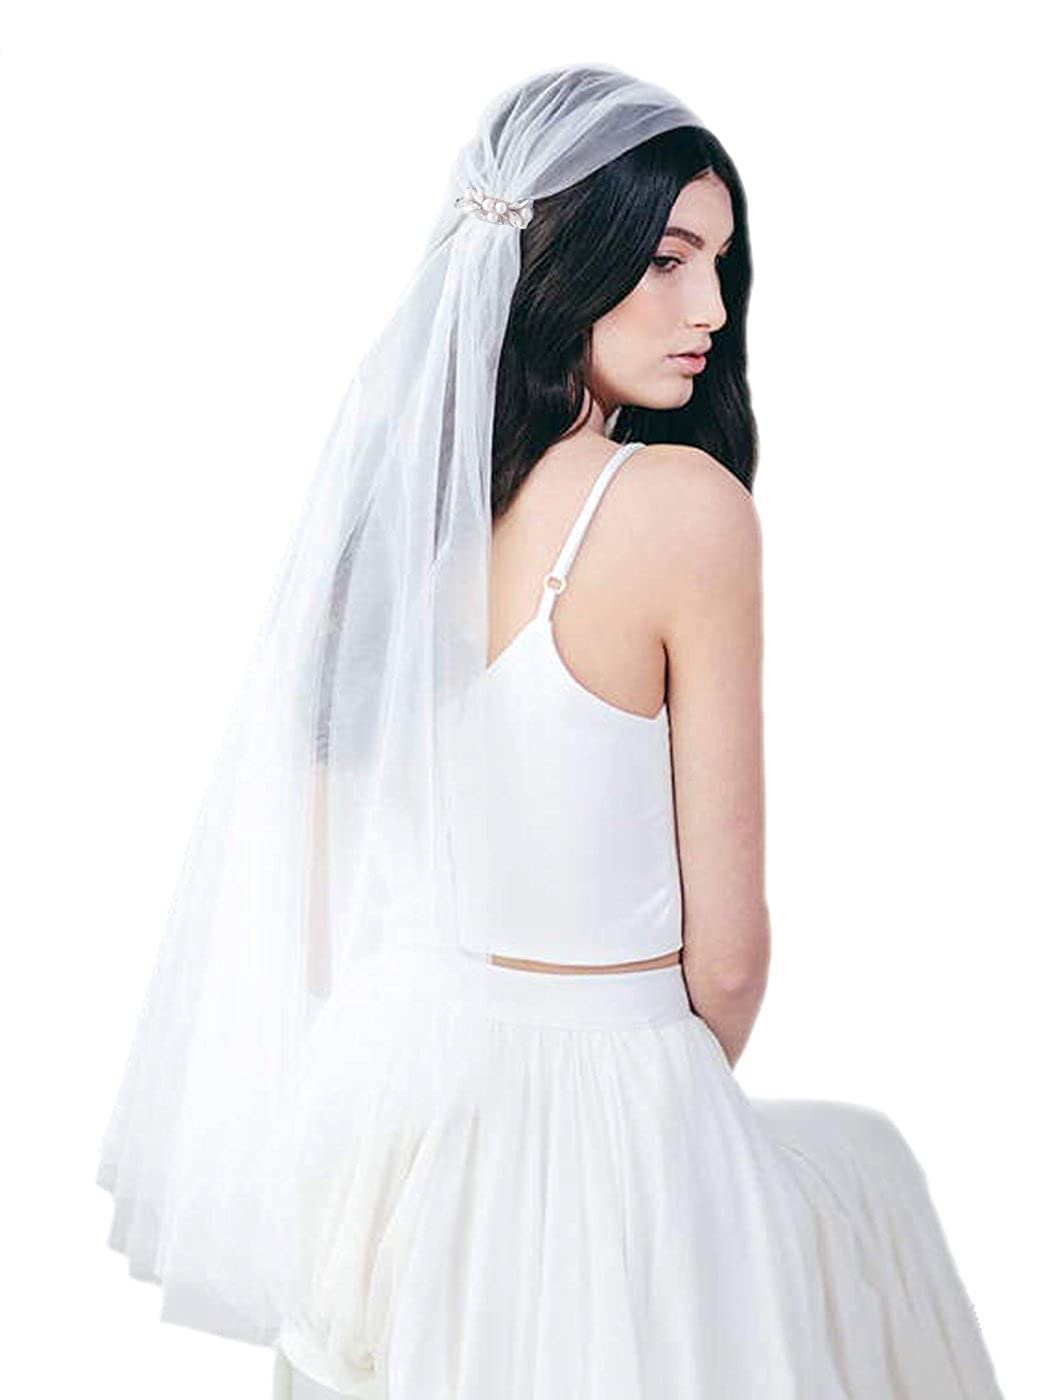 Aukmla Wedding Veil 1 Tier Bridal Fingertip Veil with Comb and Soft Tulle (45 Inches) 115 CM (Ivory)